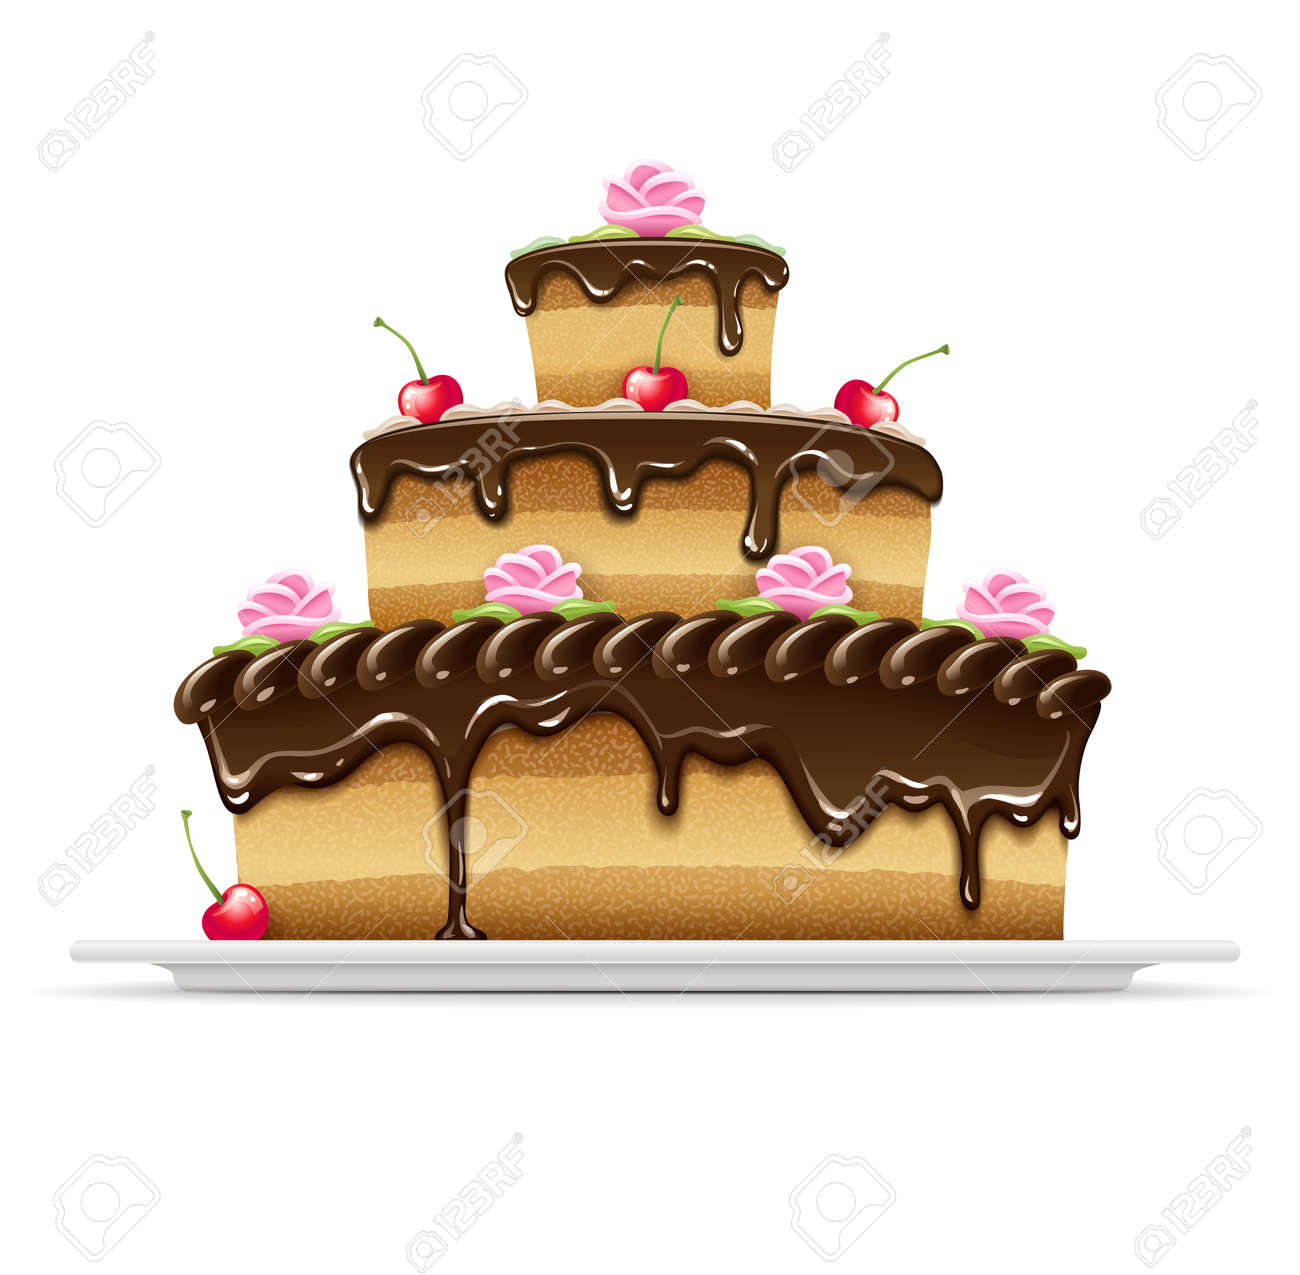 sweet chocolate cake for birthday holiday. Transparent objects used for shadows and lights drawing. Stock Vector - 12998491